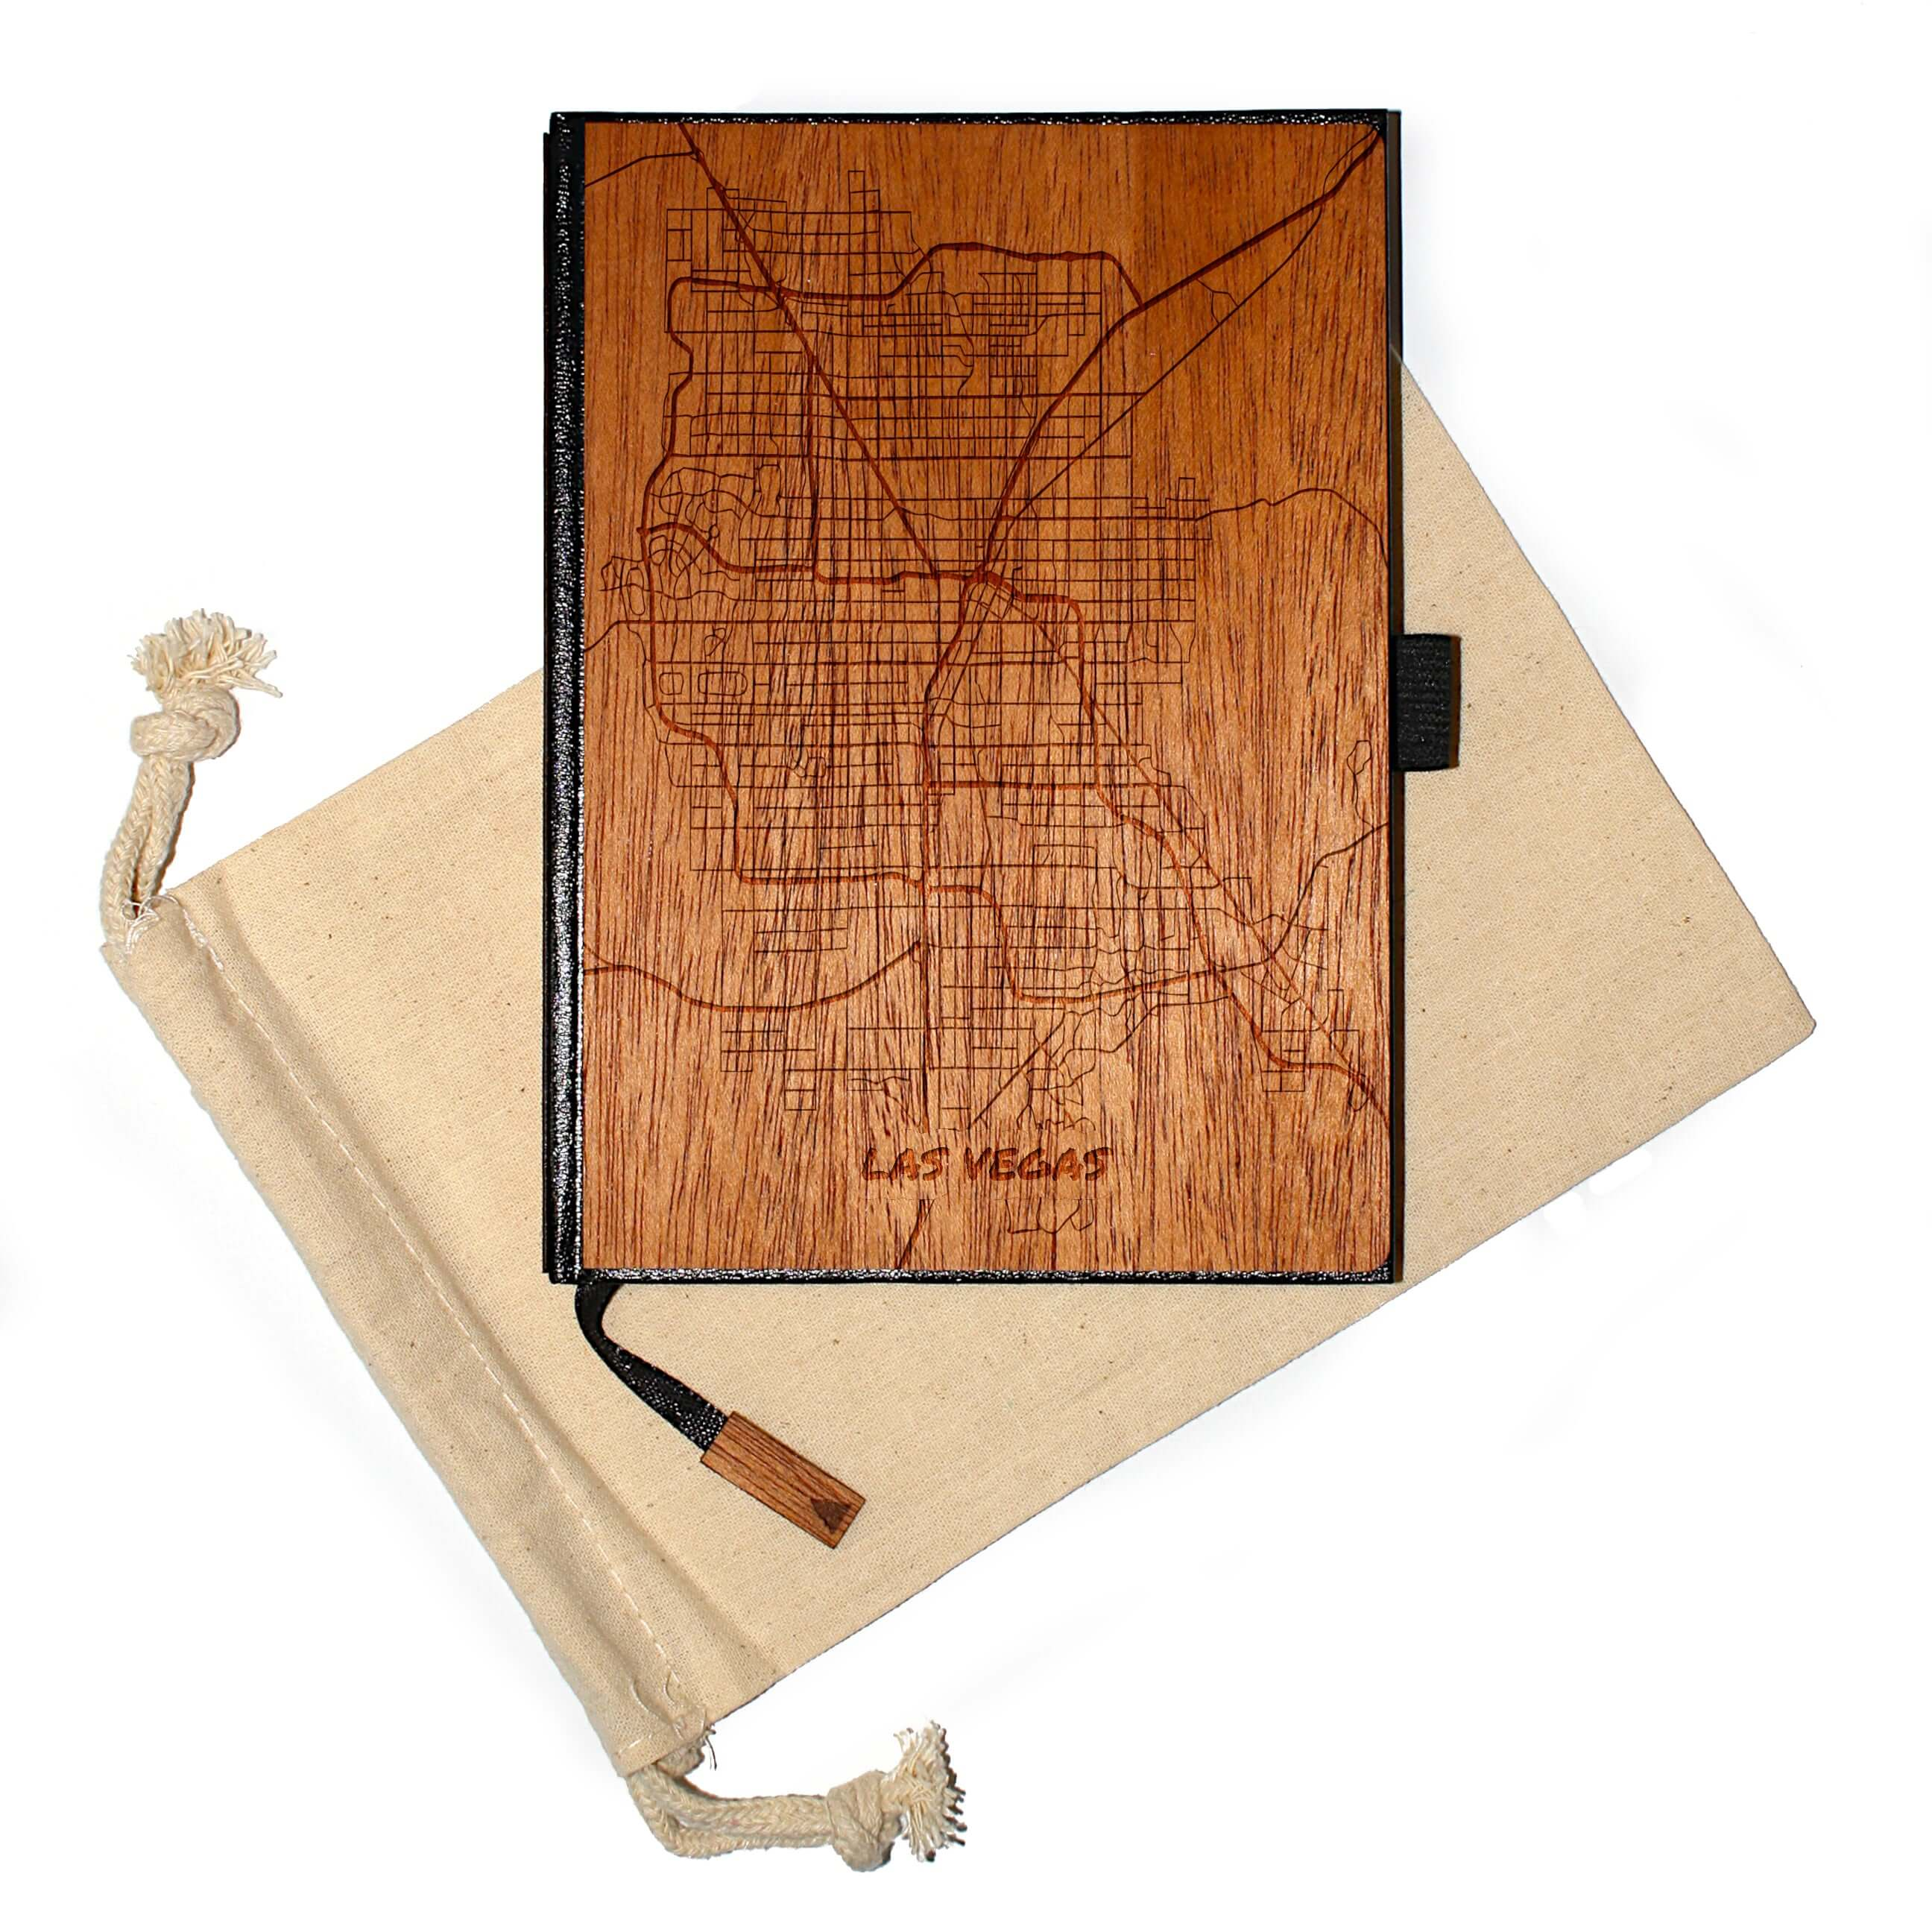 5 x 7 Wood Travel Journal / Planner (147 Laser-Engraved US City Maps) (ALBUQUERQUE to ITHACA)